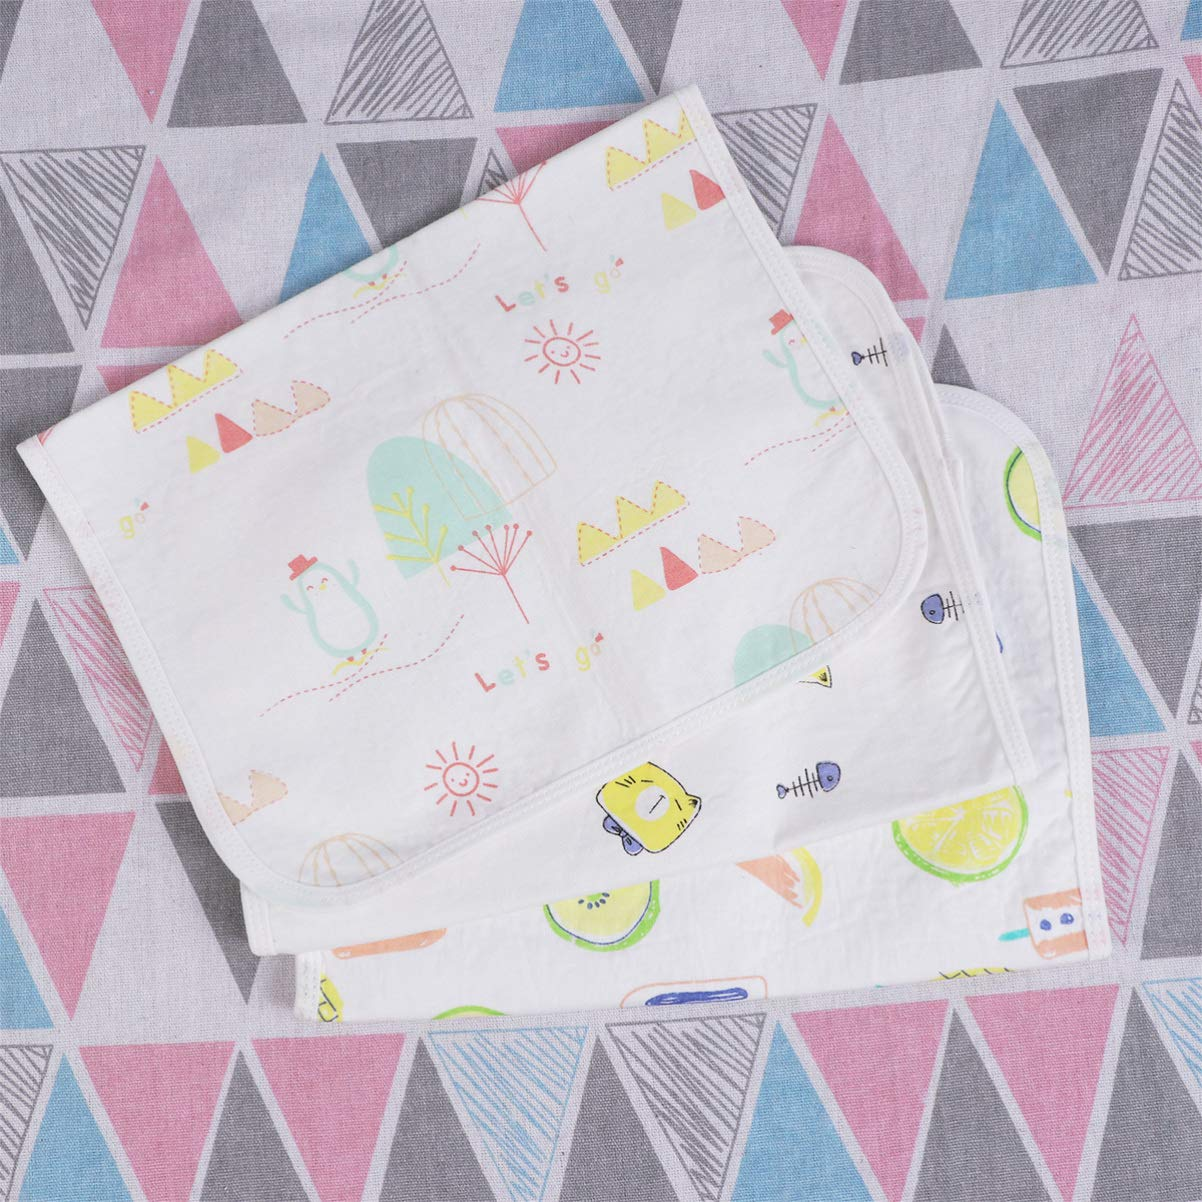 Artibetter 3PCS Portable Baby Changing Pad Diaper Mat for Travel Strollers Toddler